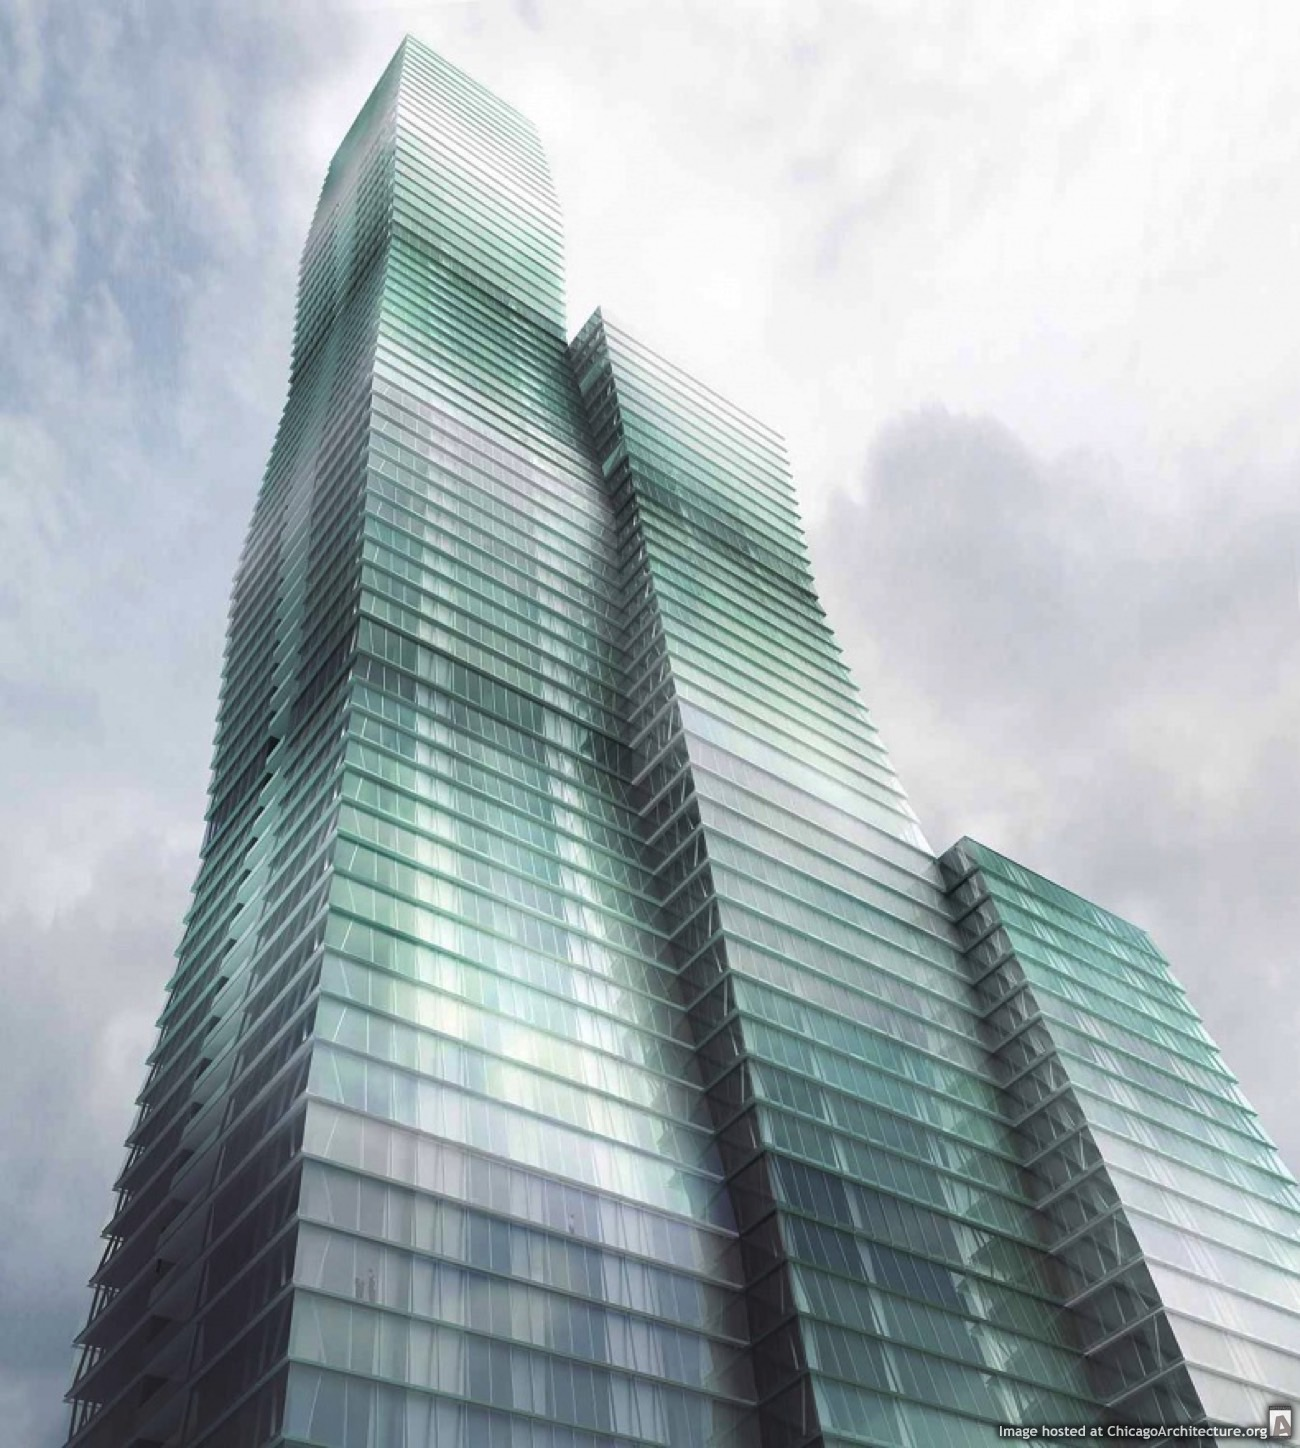 Rendring of the Wanda Vista Tower (Courtesy of Studio Gang)